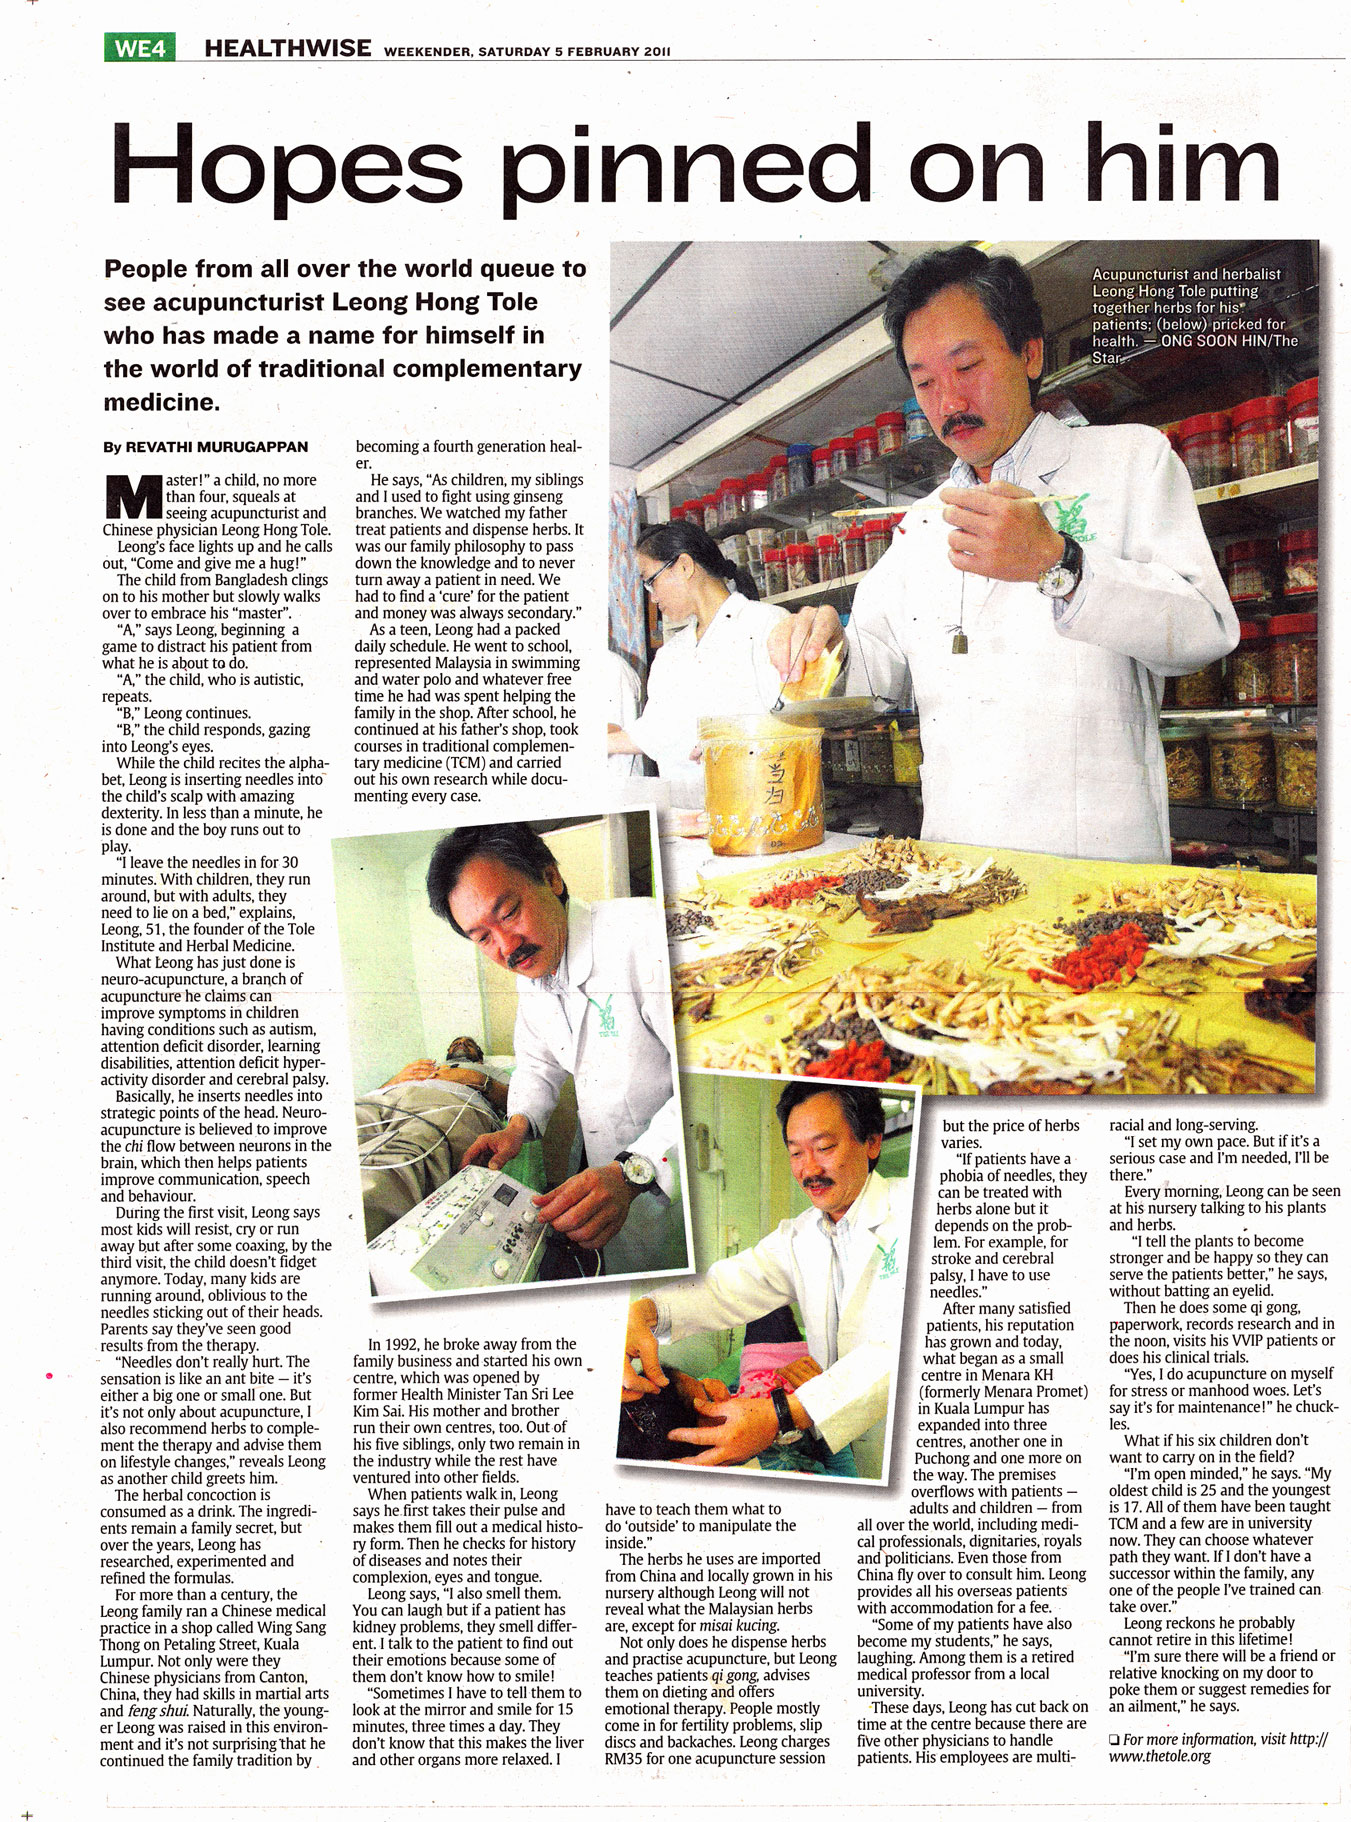 The Star Newspaper report on Our Master's  Acupuncture Treatment and Herbal Medical Treatment